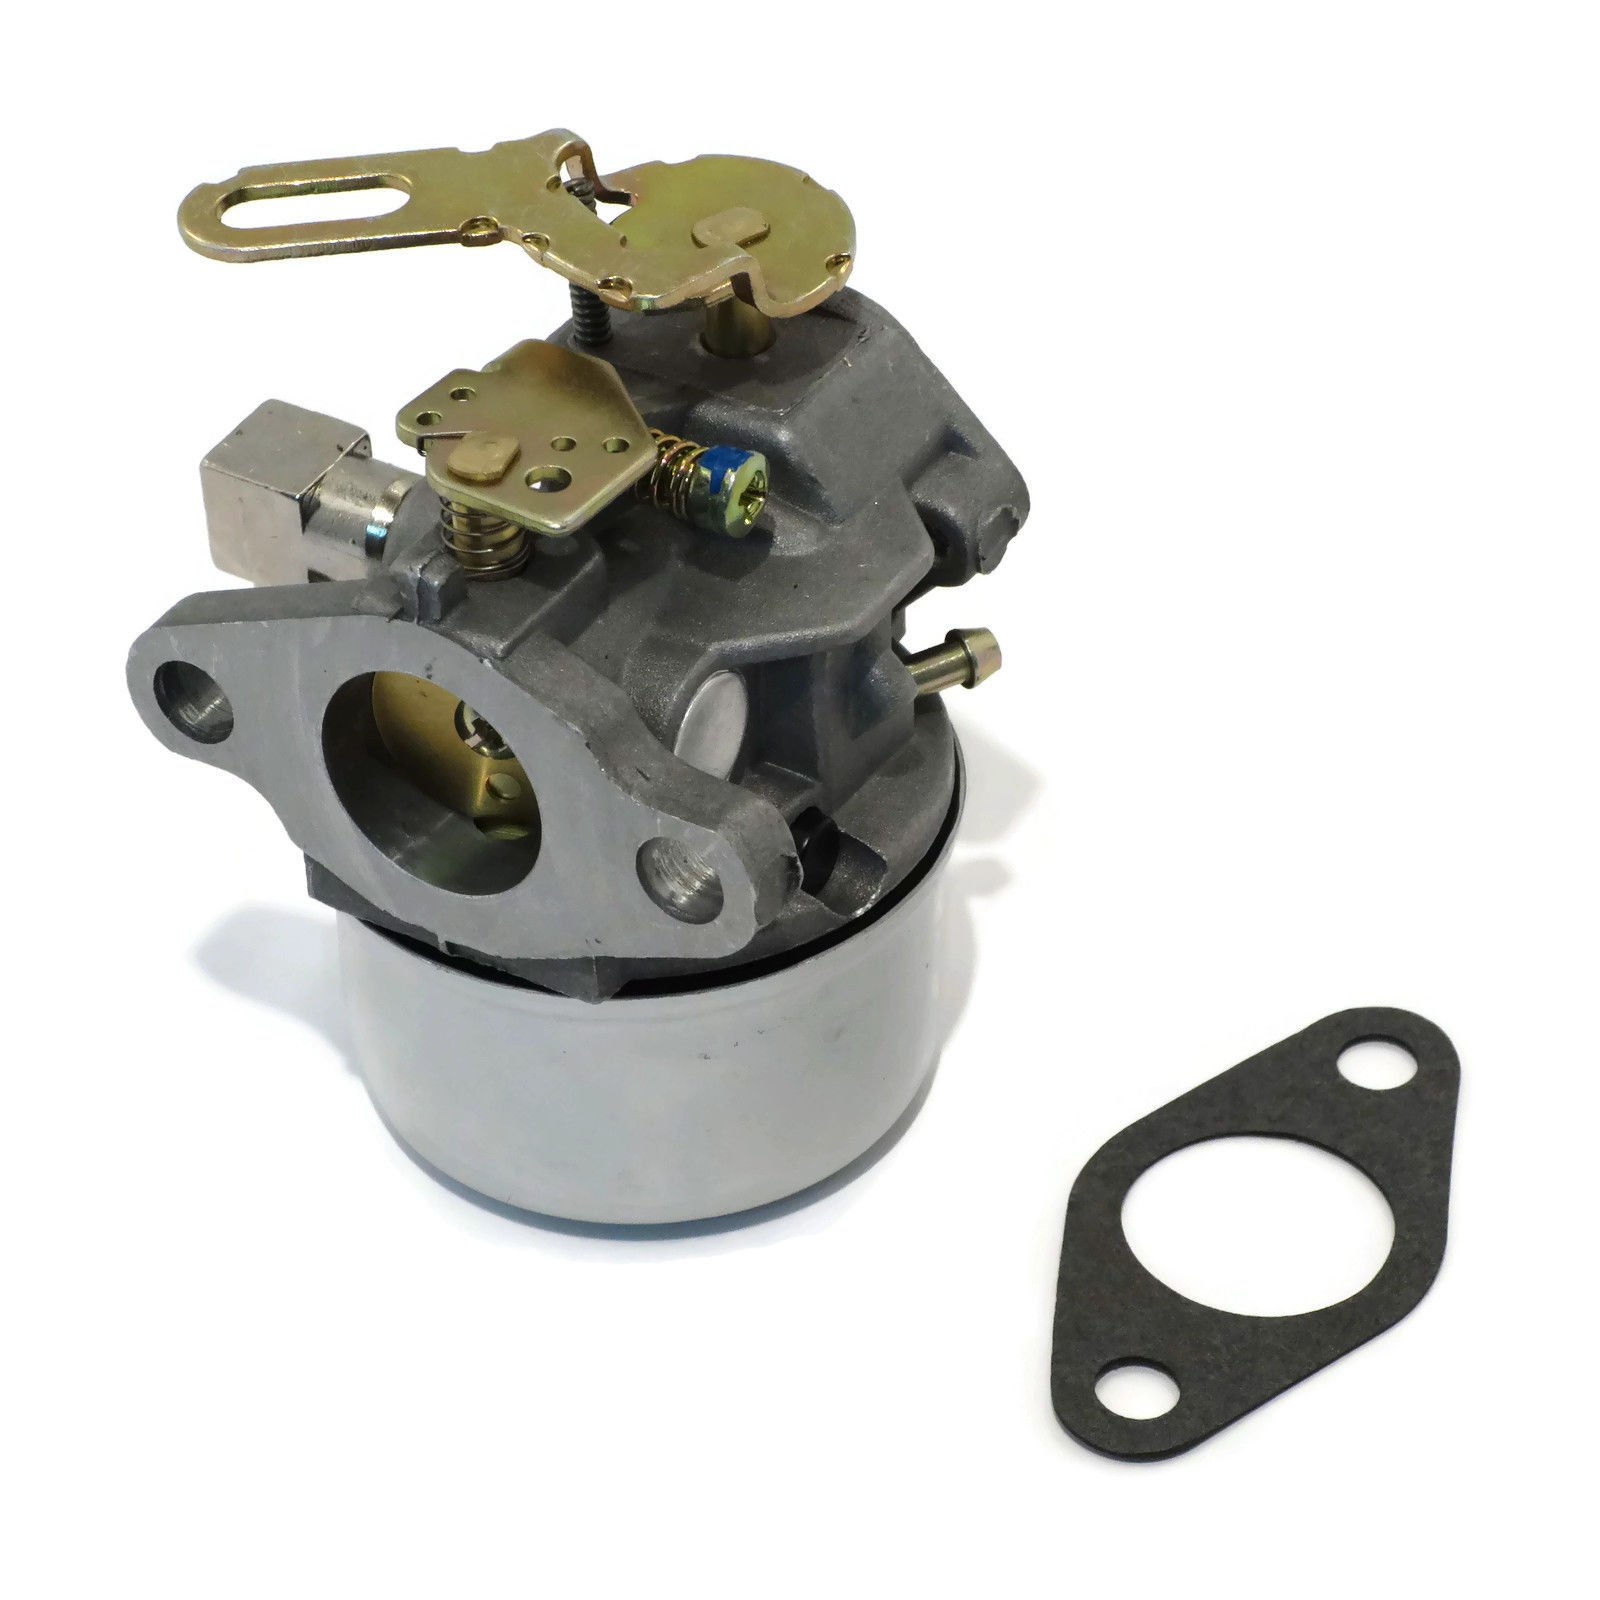 The ROP Shop New Carburetor Carb for Tecumseh 640299 640299A 640299B for Snow Blower Throwers by The ROP Shop